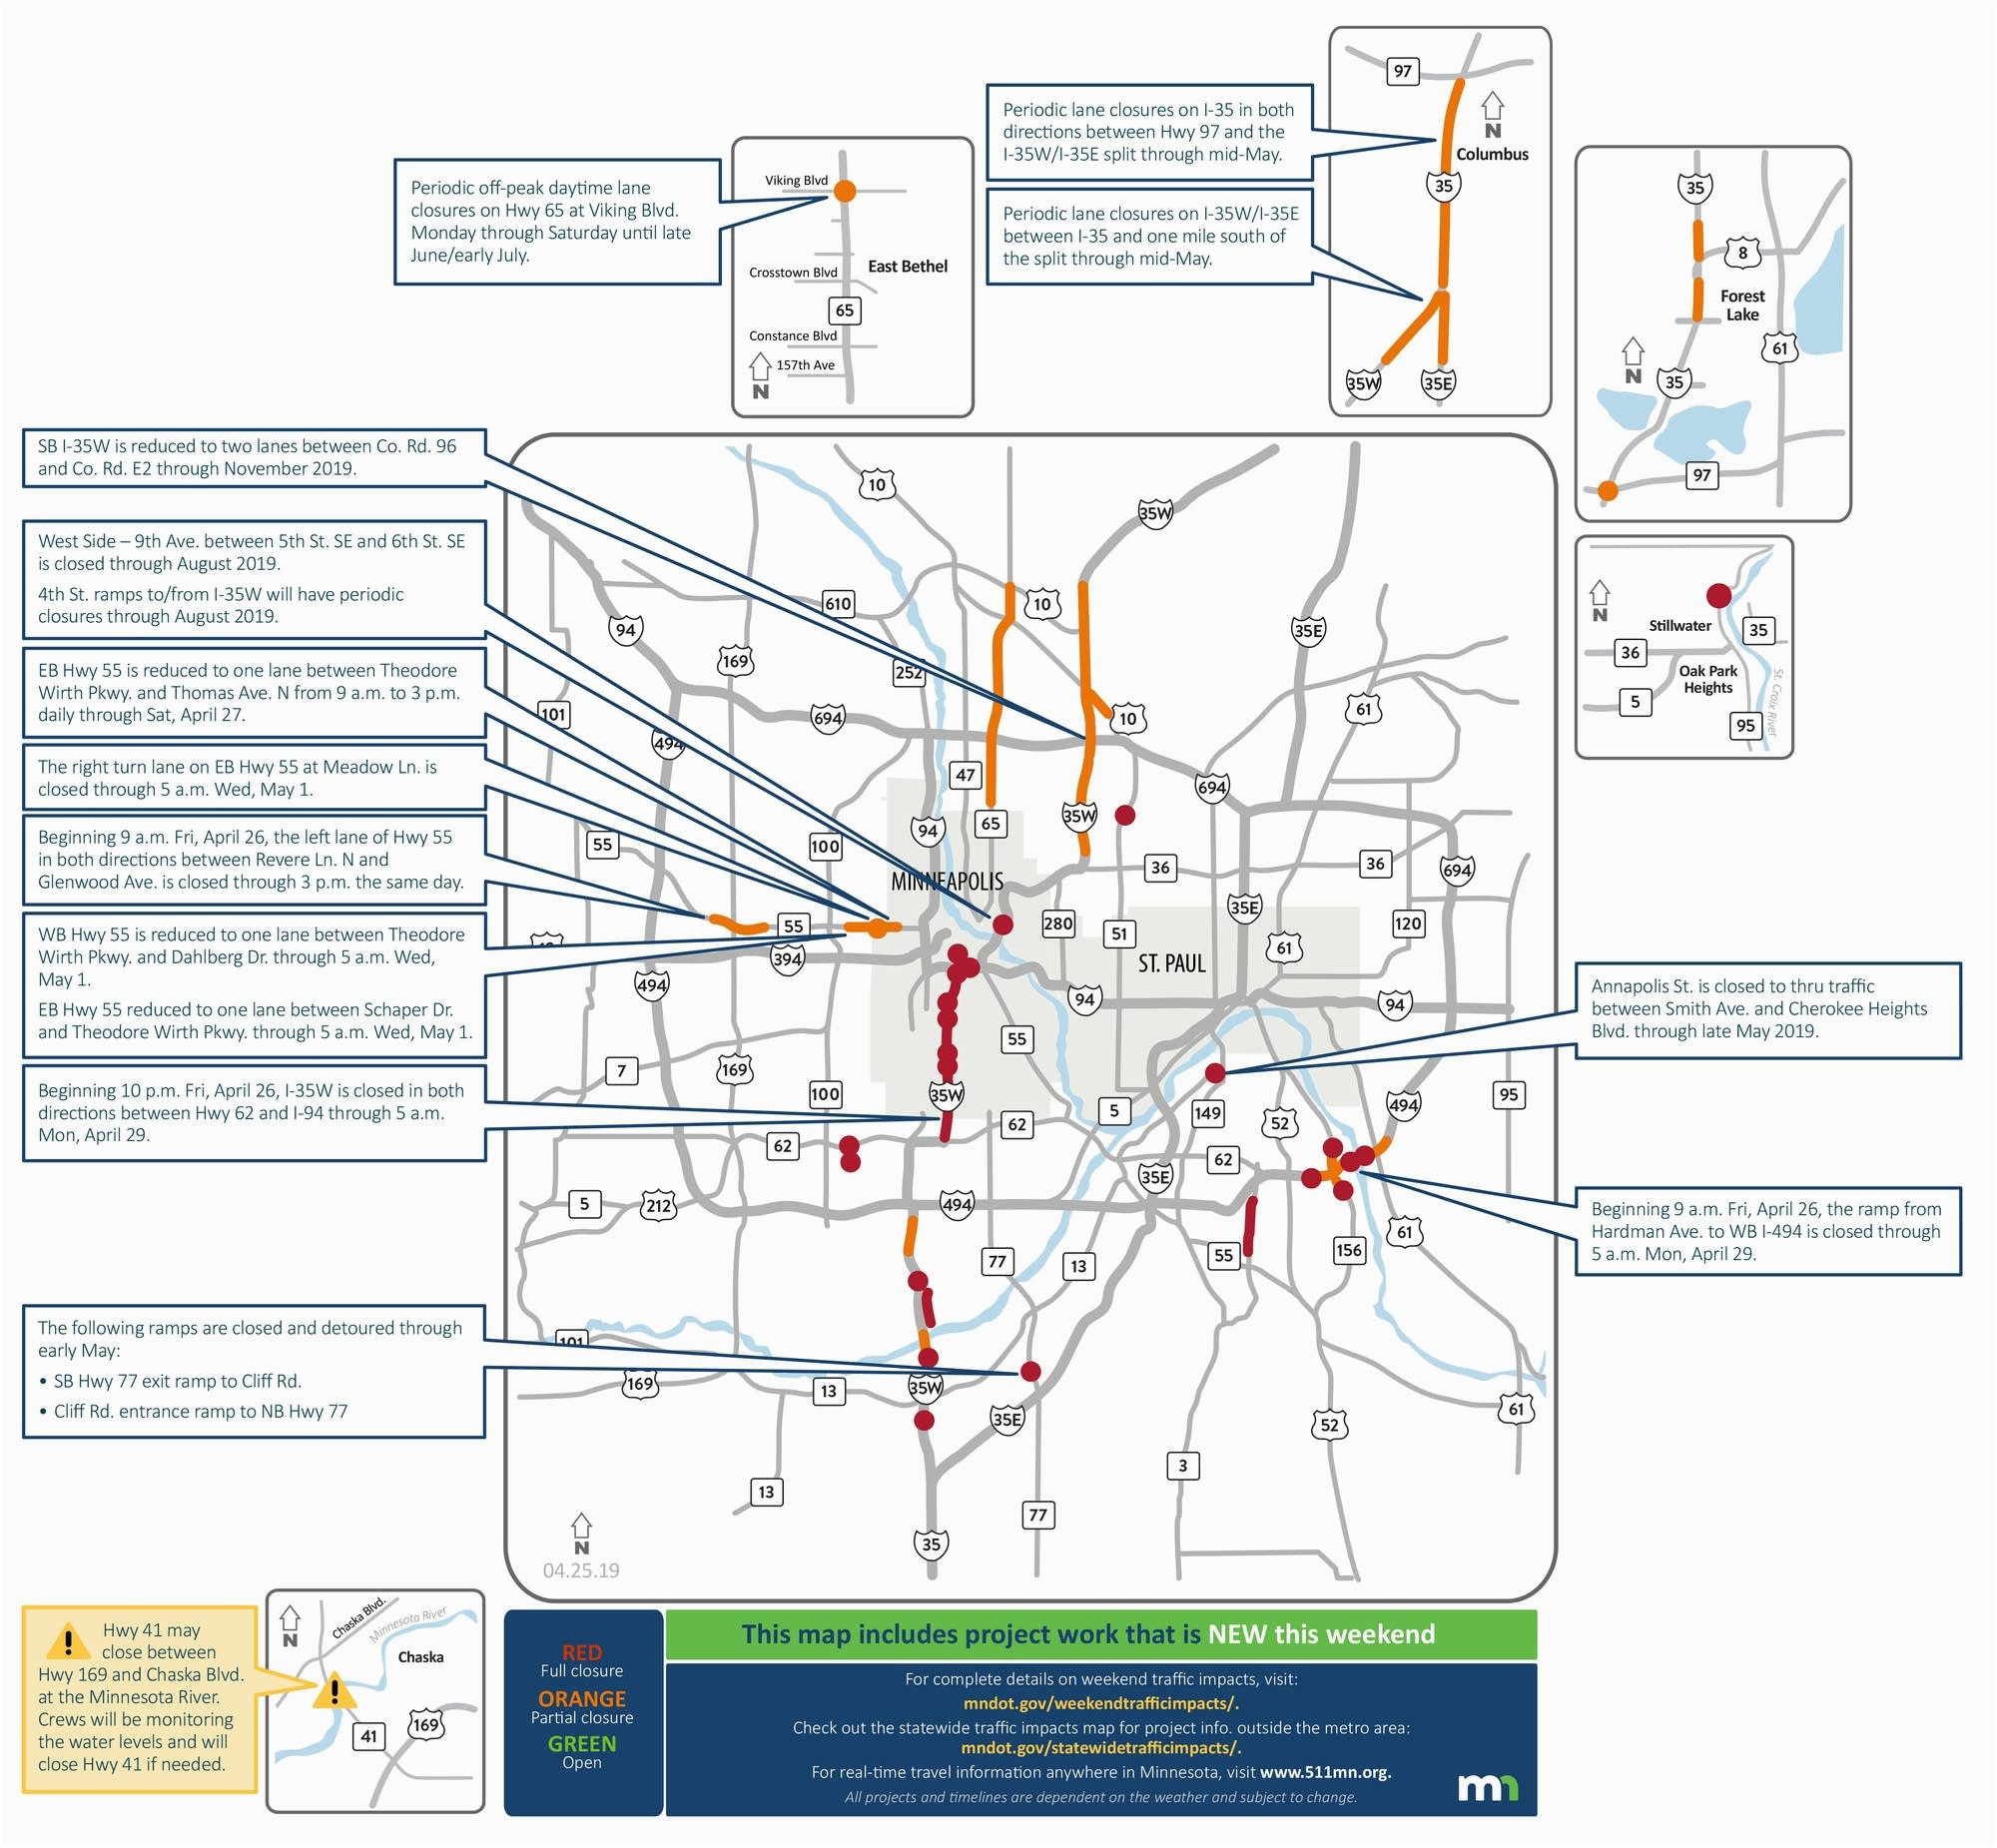 Minnesota Road Condition Map Closures On I 35w Lane Reductions Throughout Metro area This Weekend